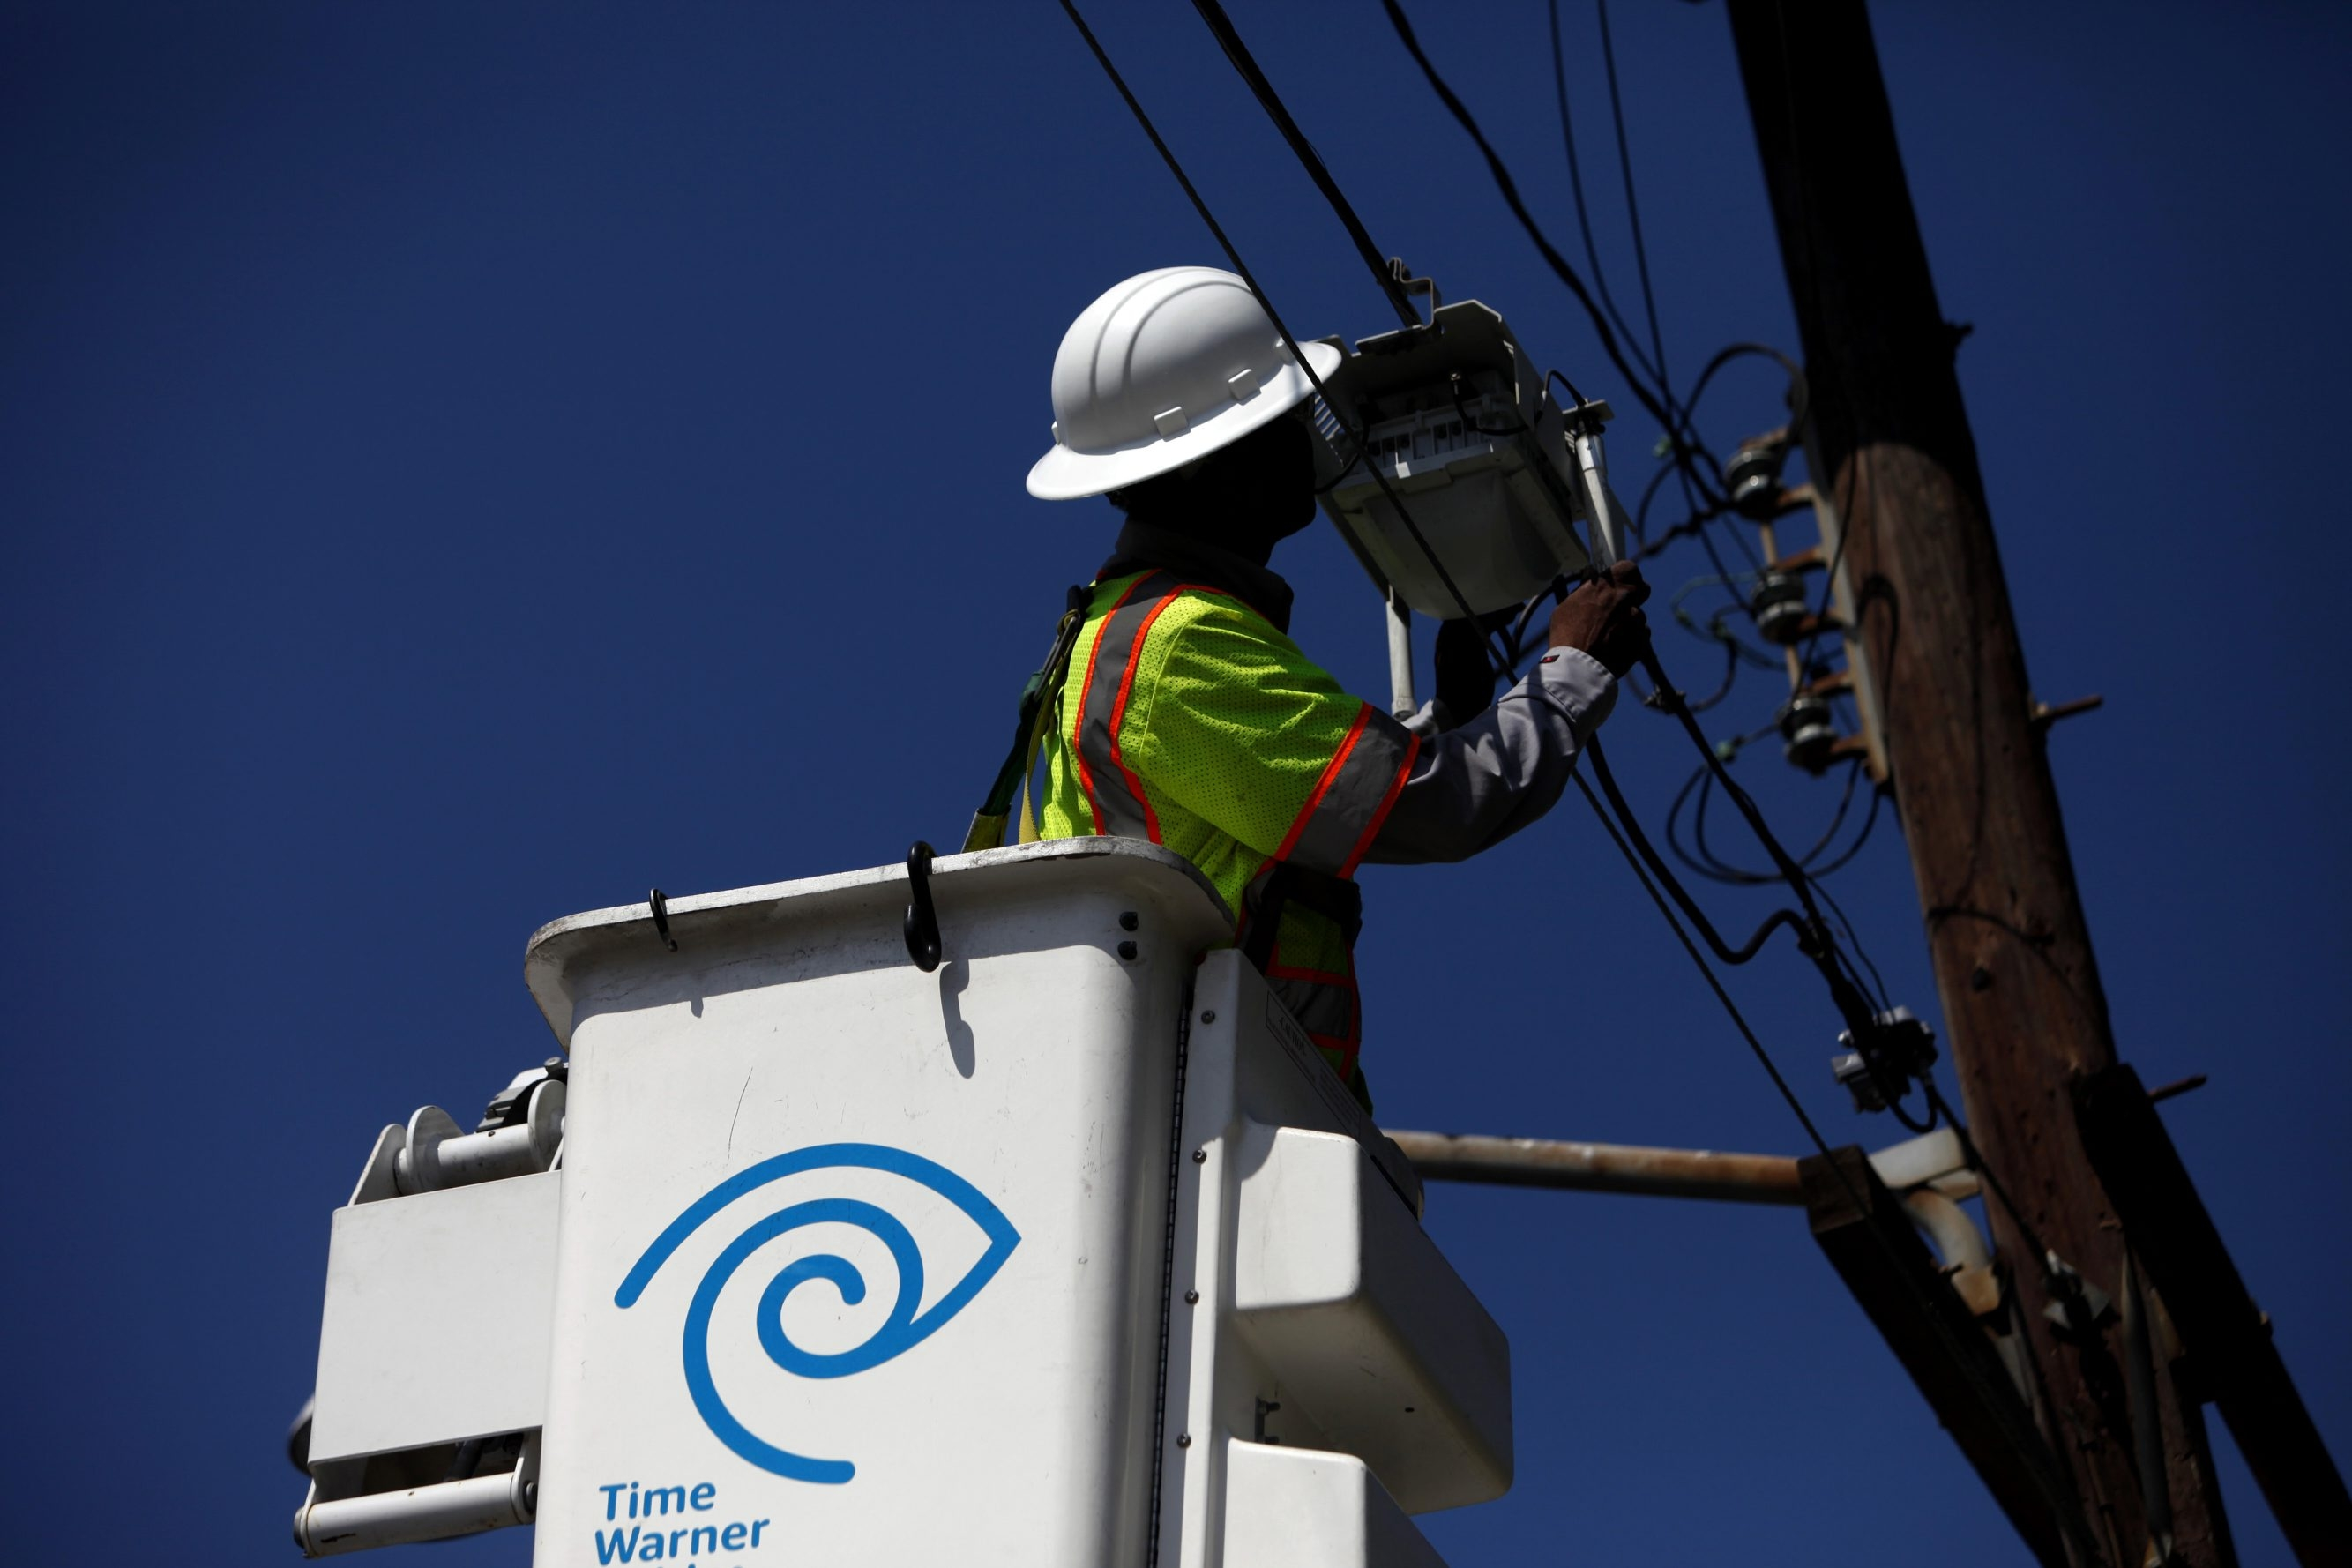 A technician for Time Warner checks the connection for a WiFi hotspot in Manhattan Beach, Calif.